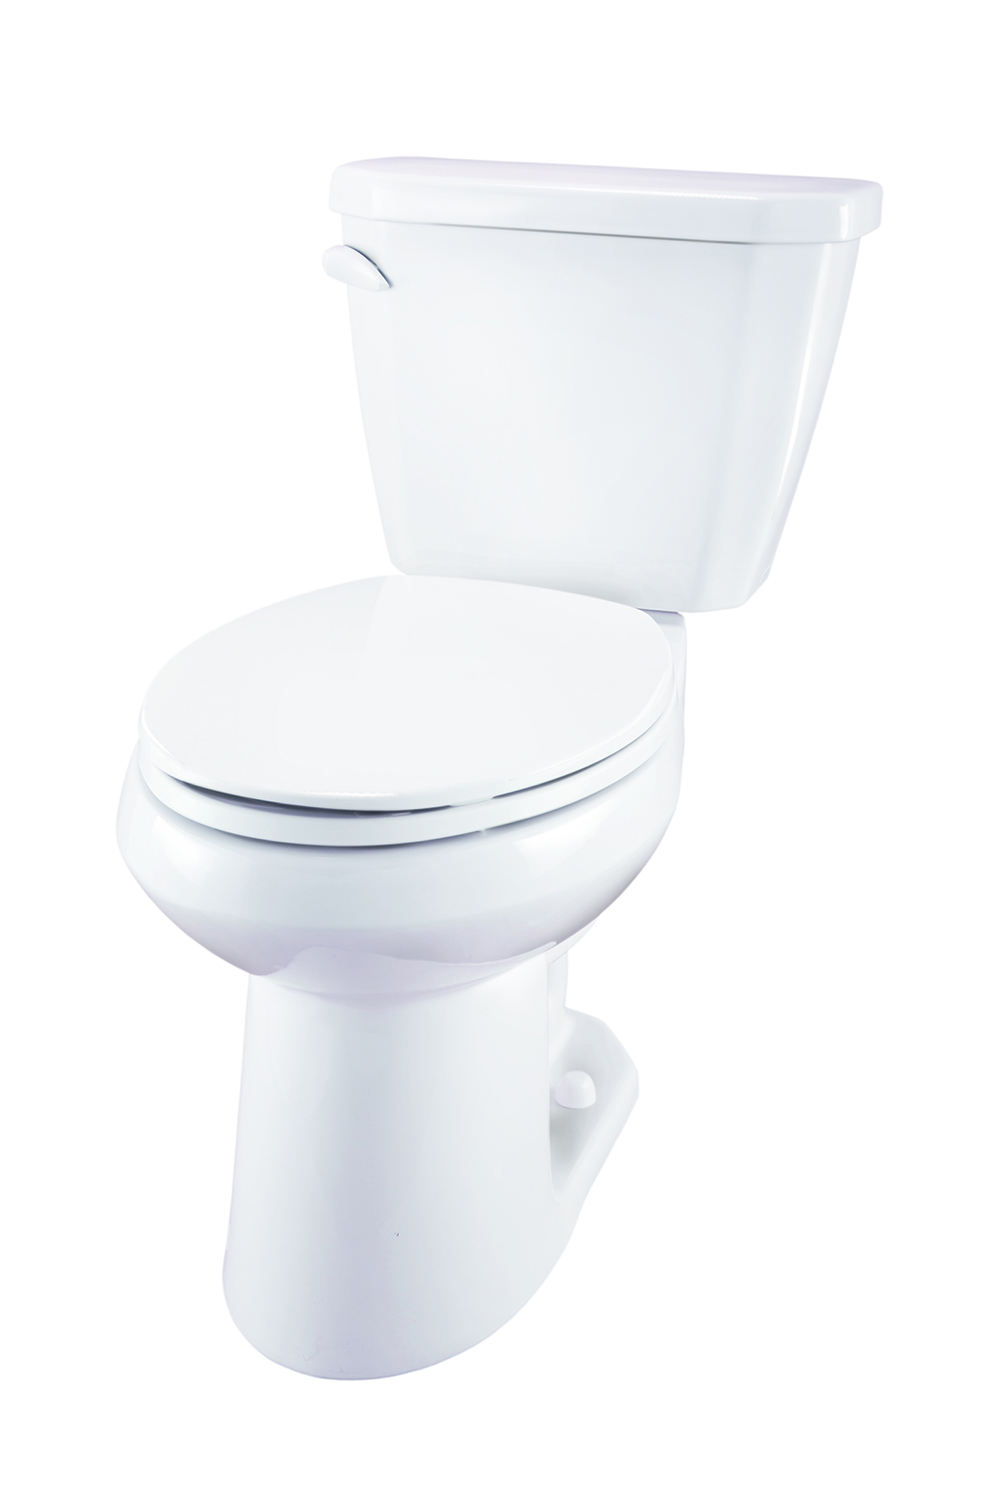 Viper 128 Gpf 10 Rough In Two Piece Elongated Ergoheight Toilet